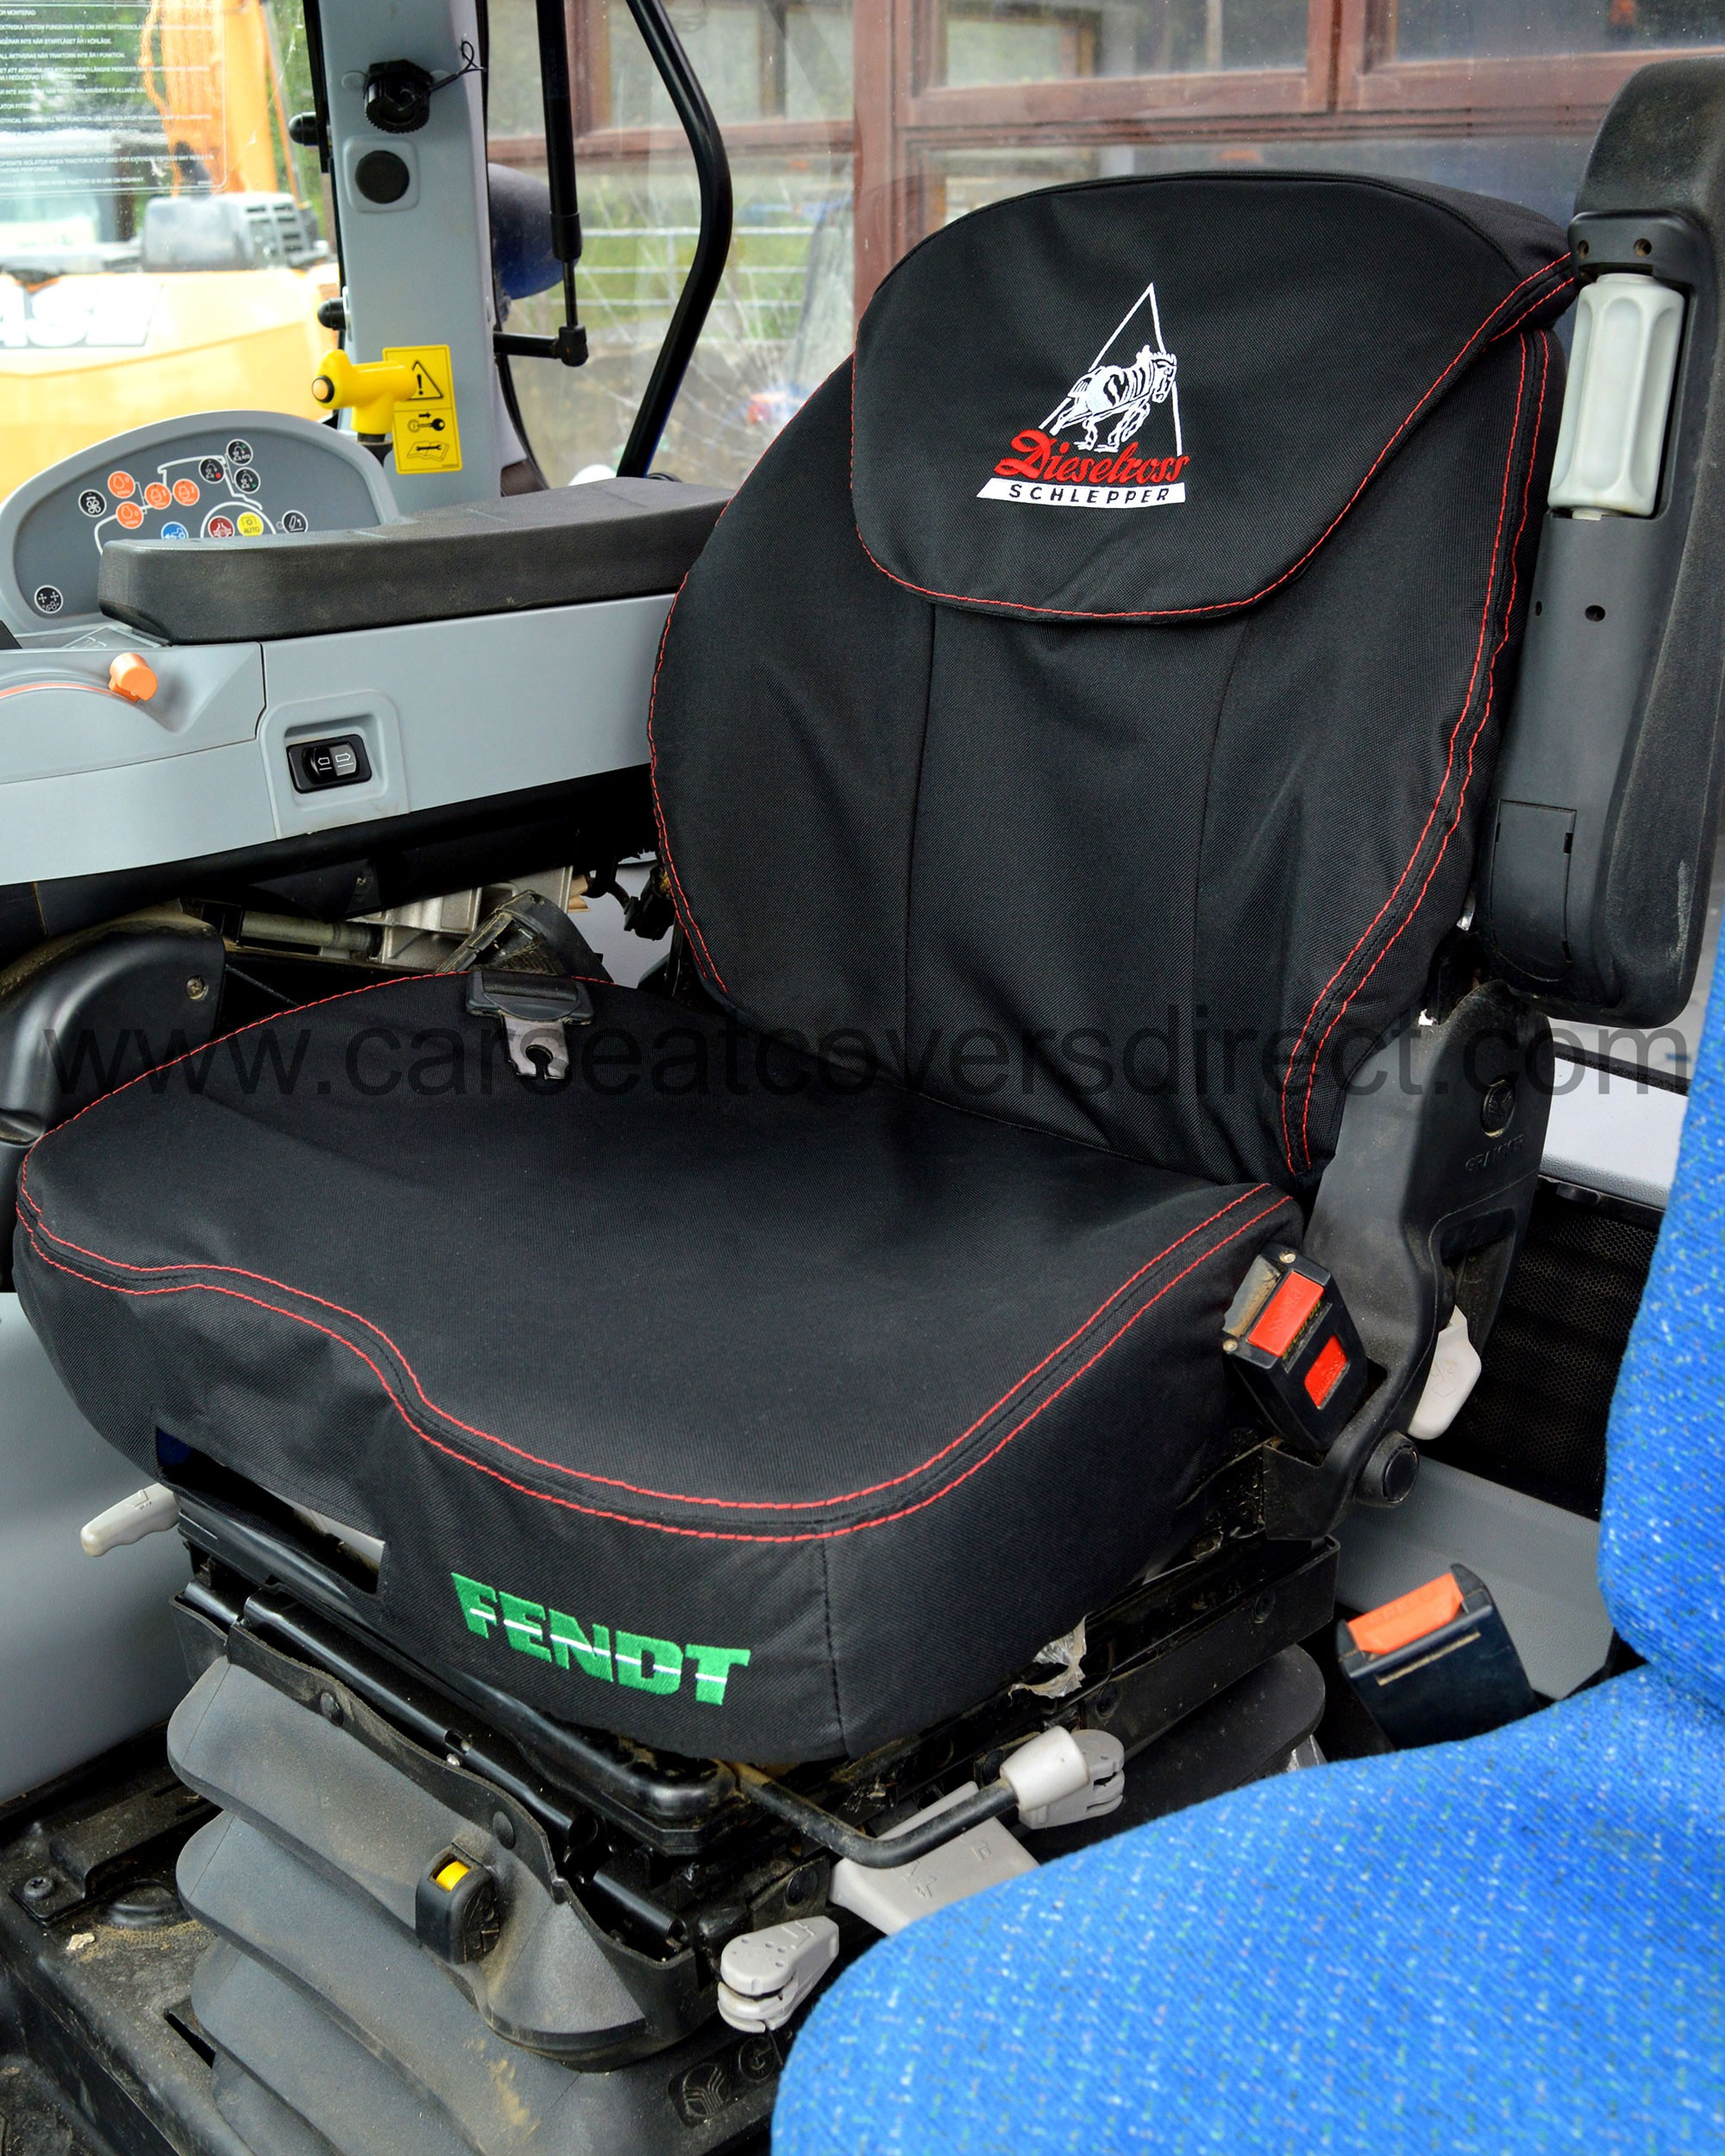 Fendt Tractor Seat Covers